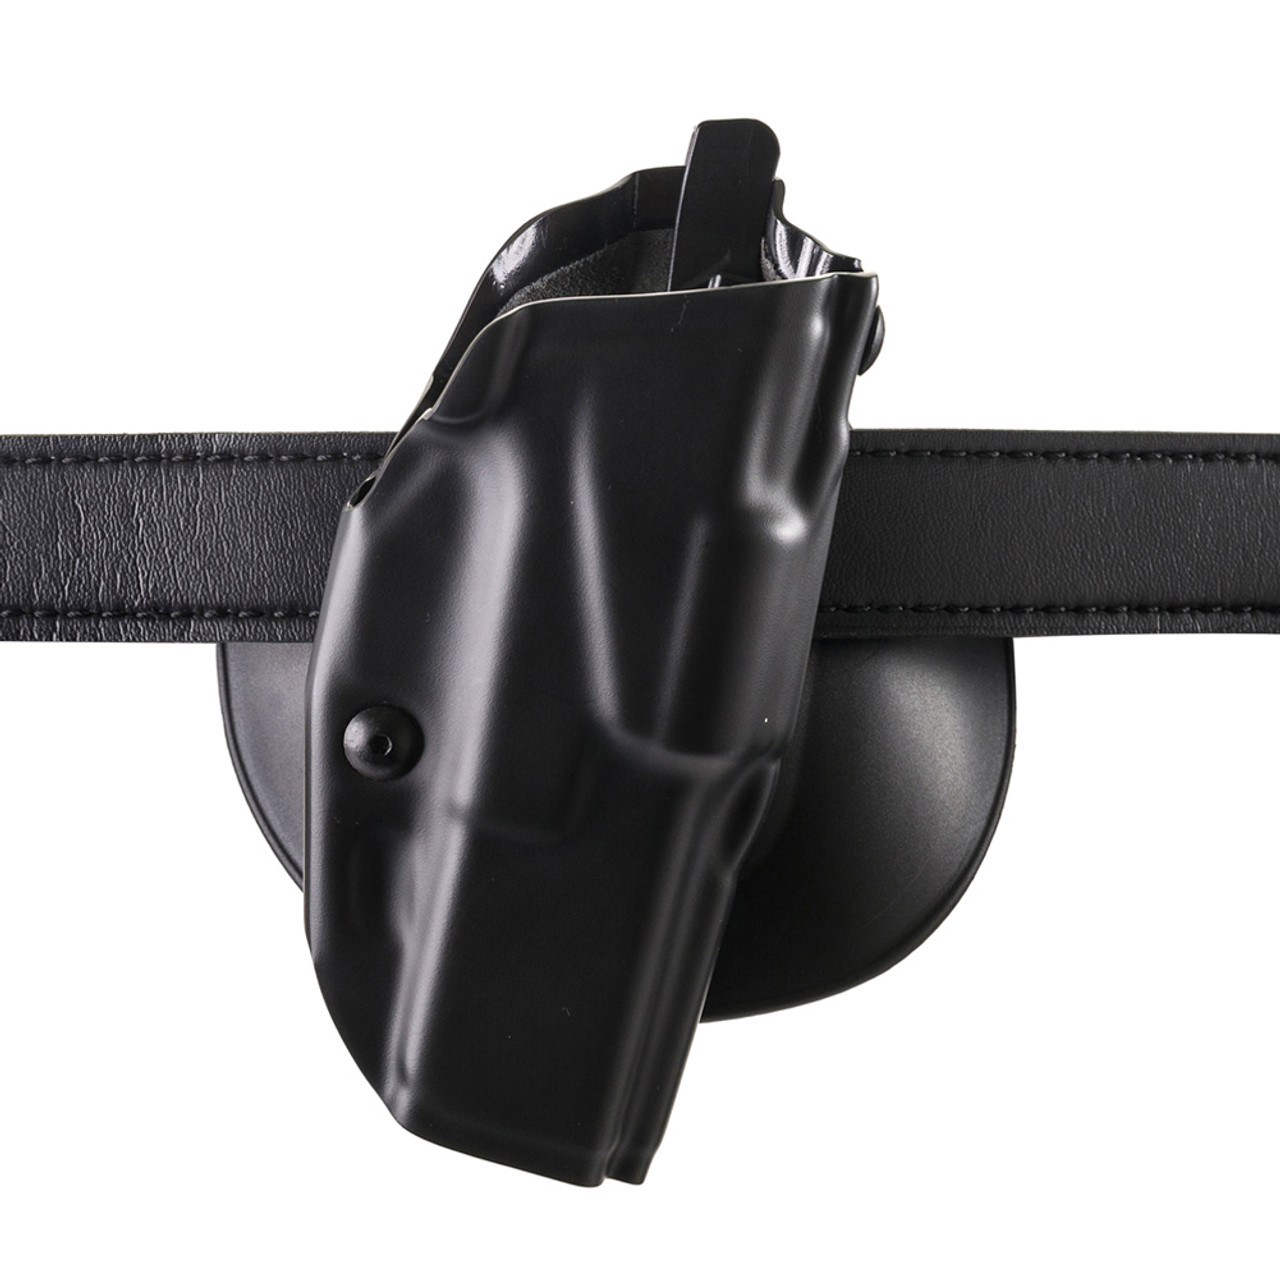 SAFARILAND 6378 S&W Small J-Frame Plain Black RH Paddle Holster  (6378-01-411)